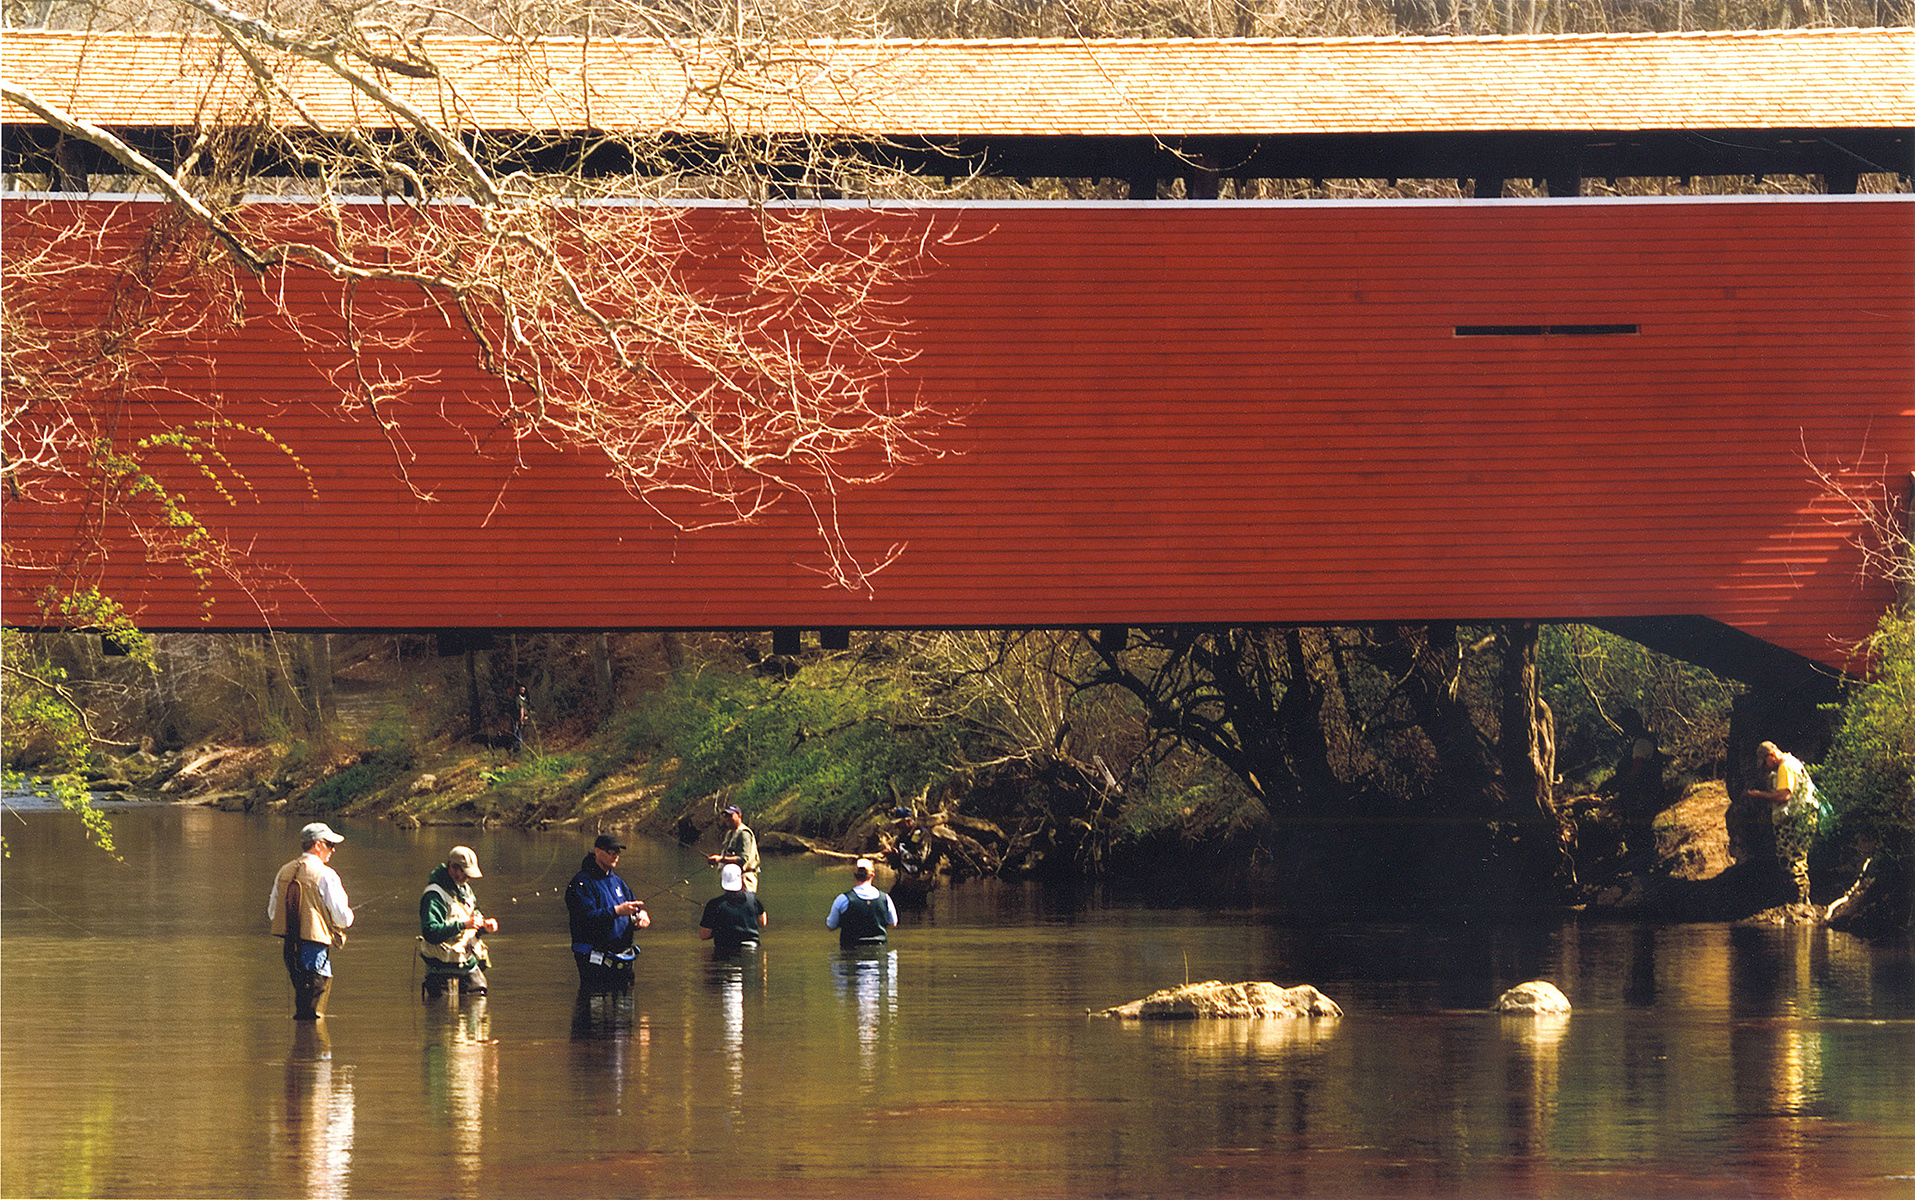 A group of fisherman enjoy a day in the water on one of our many creeks and rivers.